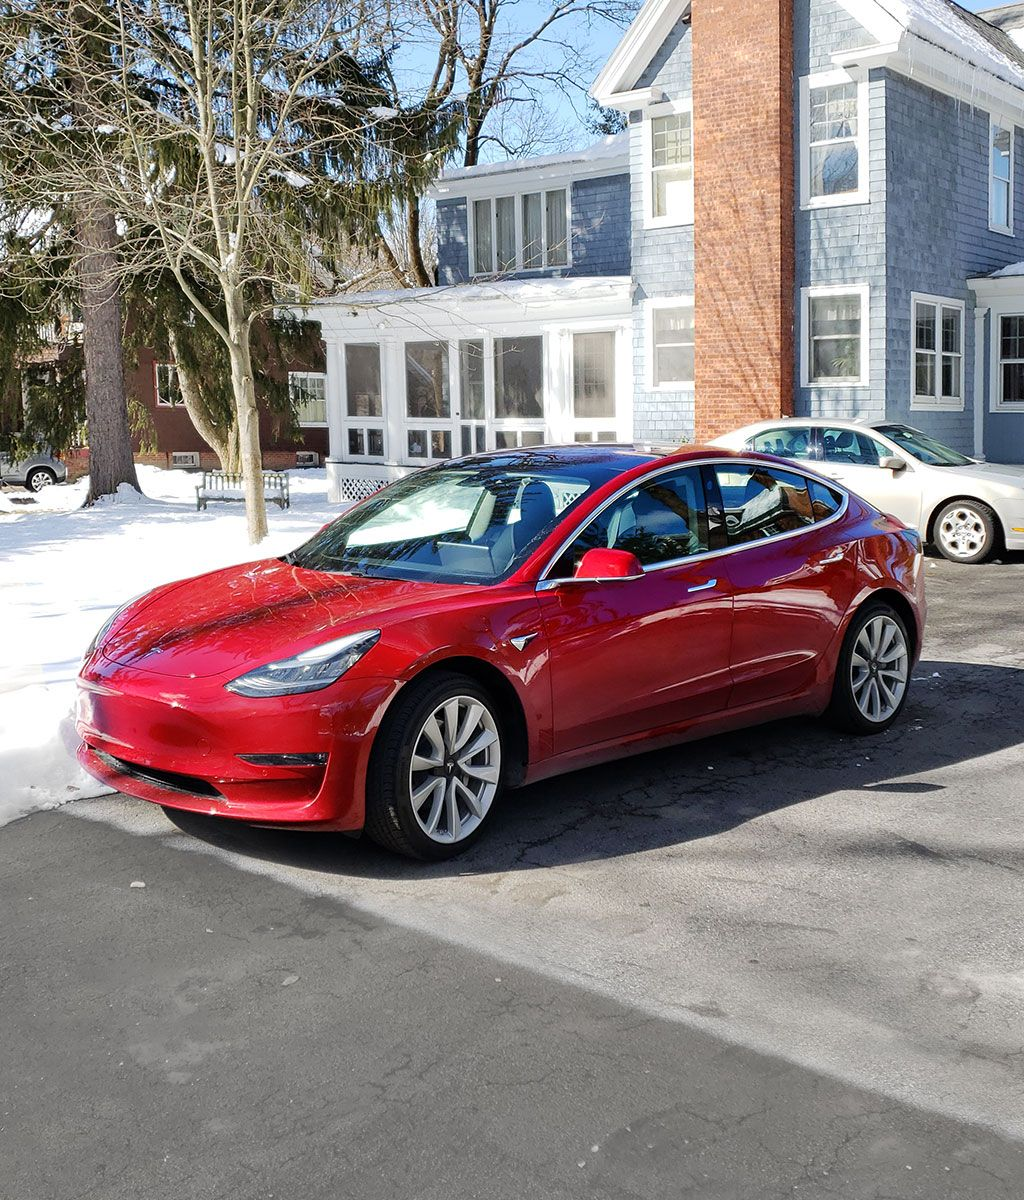 2018 Tesla Model S Camshaft: Tesla Model 3 Review: What It's Like To Drive Tesla's New EV